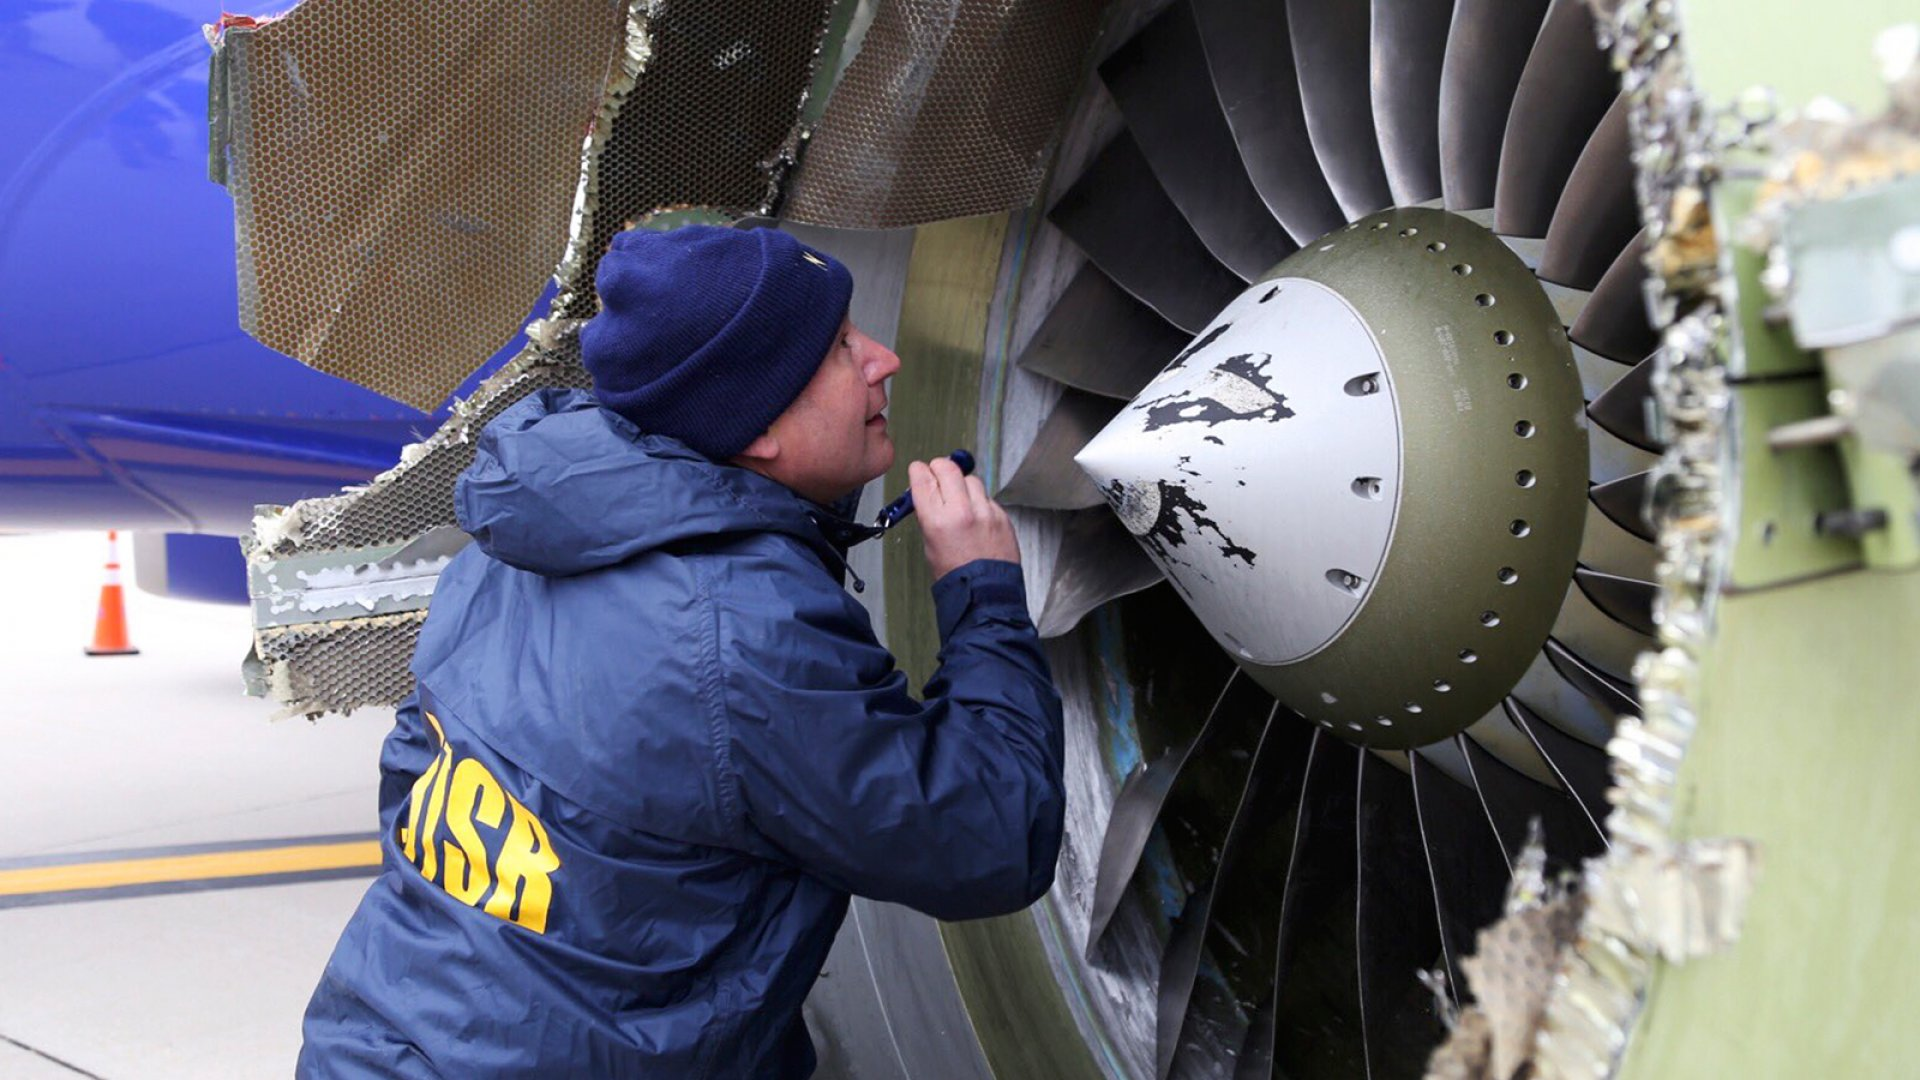 "In this Tuesday, April 17, 2018 photo, a National Transportation Safety Board investigator examines damage to the engine of the Southwest Airlines plane that made an emergency landing at Philadelphia International Airport in Philadelphia. A preliminary examination of the blown jet engine of the Southwest Airlines plane that set off a terrifying chain of events and left a businesswoman hanging half outside a shattered window showed evidence of ""metal fatigue,"" according to the National Transportation Safety Board."